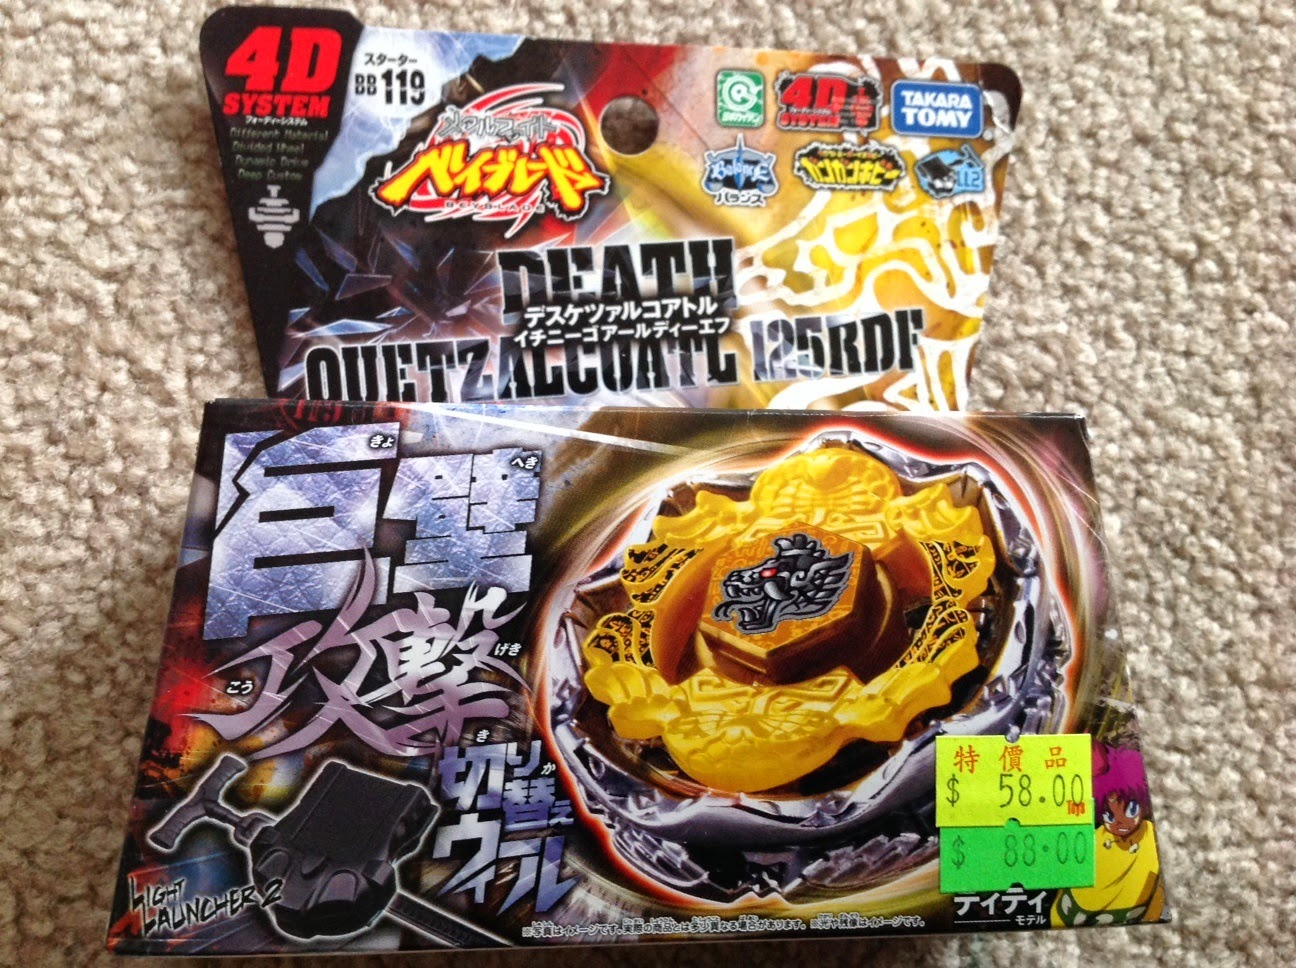 chase my beyblades death quetzalcoatl 125rdf unboxing